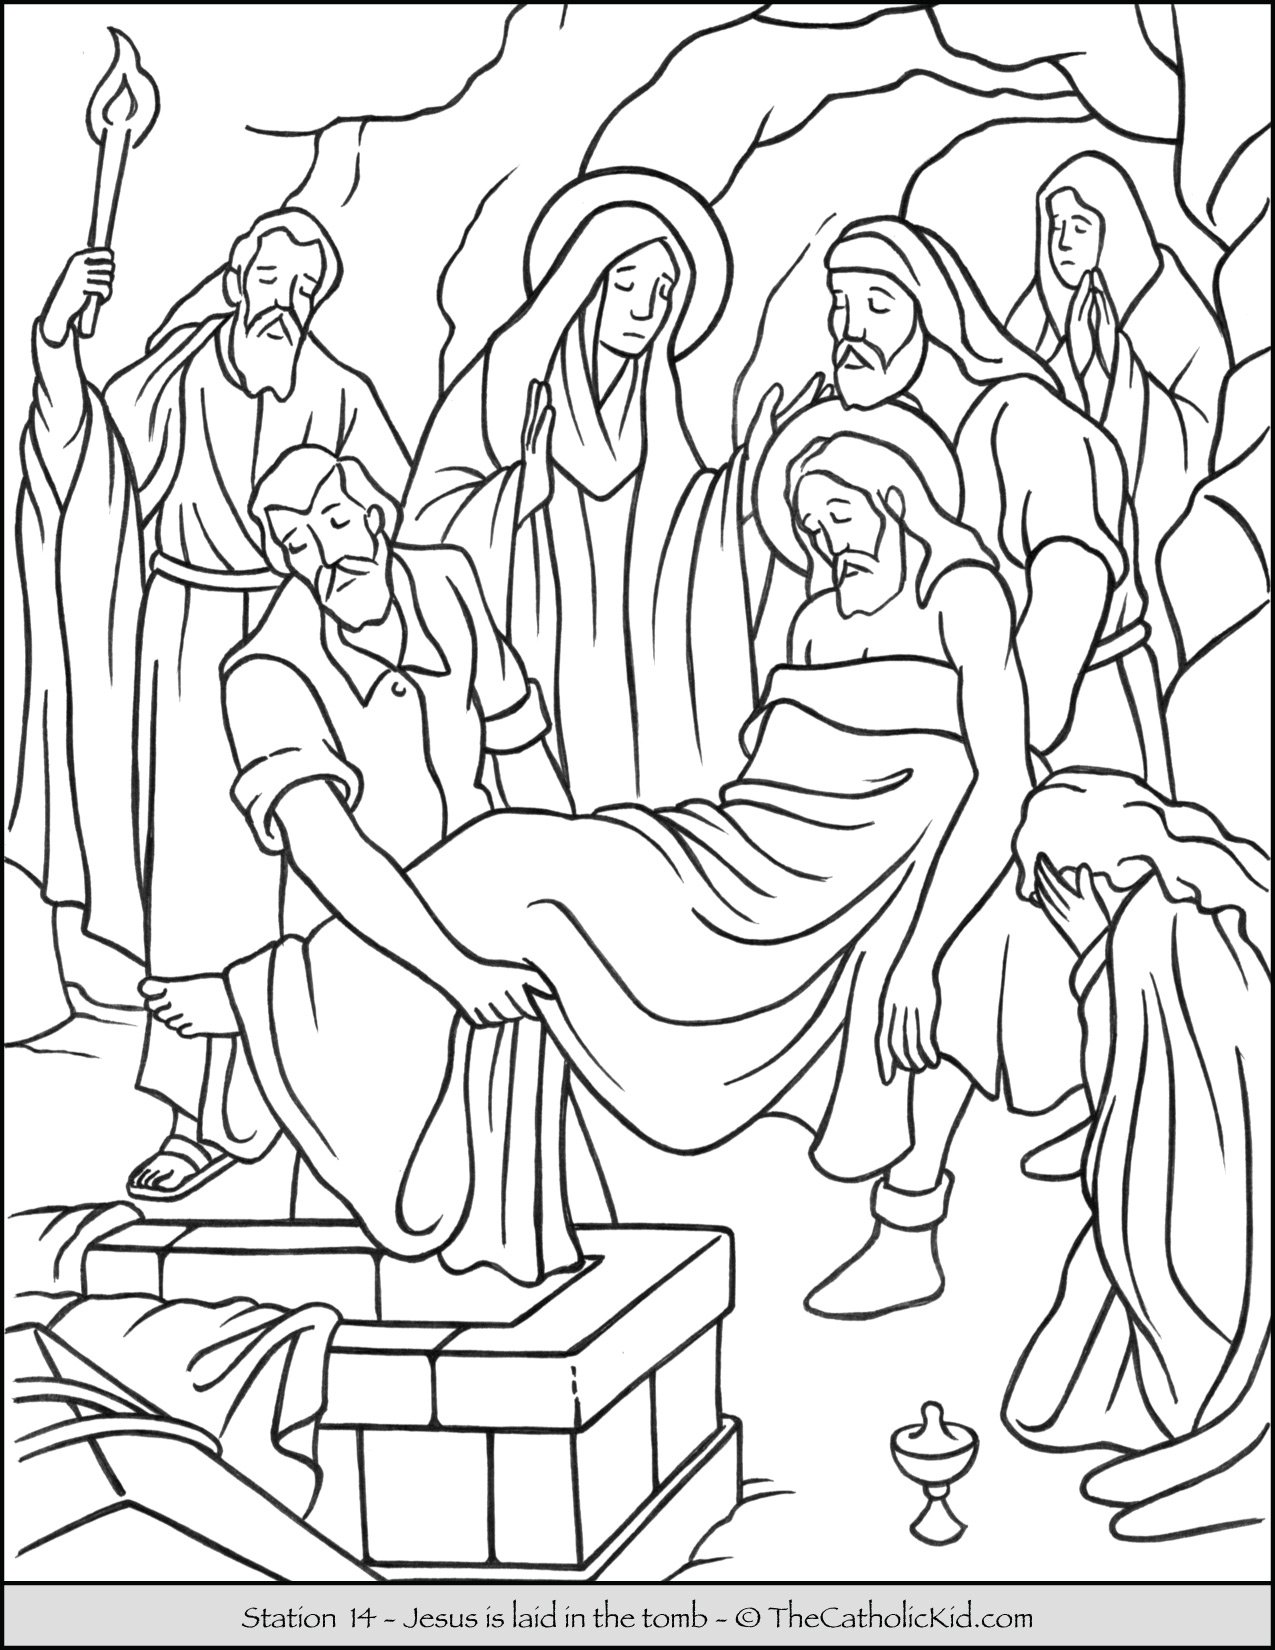 Stations of the Cross Catholic Coloring Pages for Kids 14